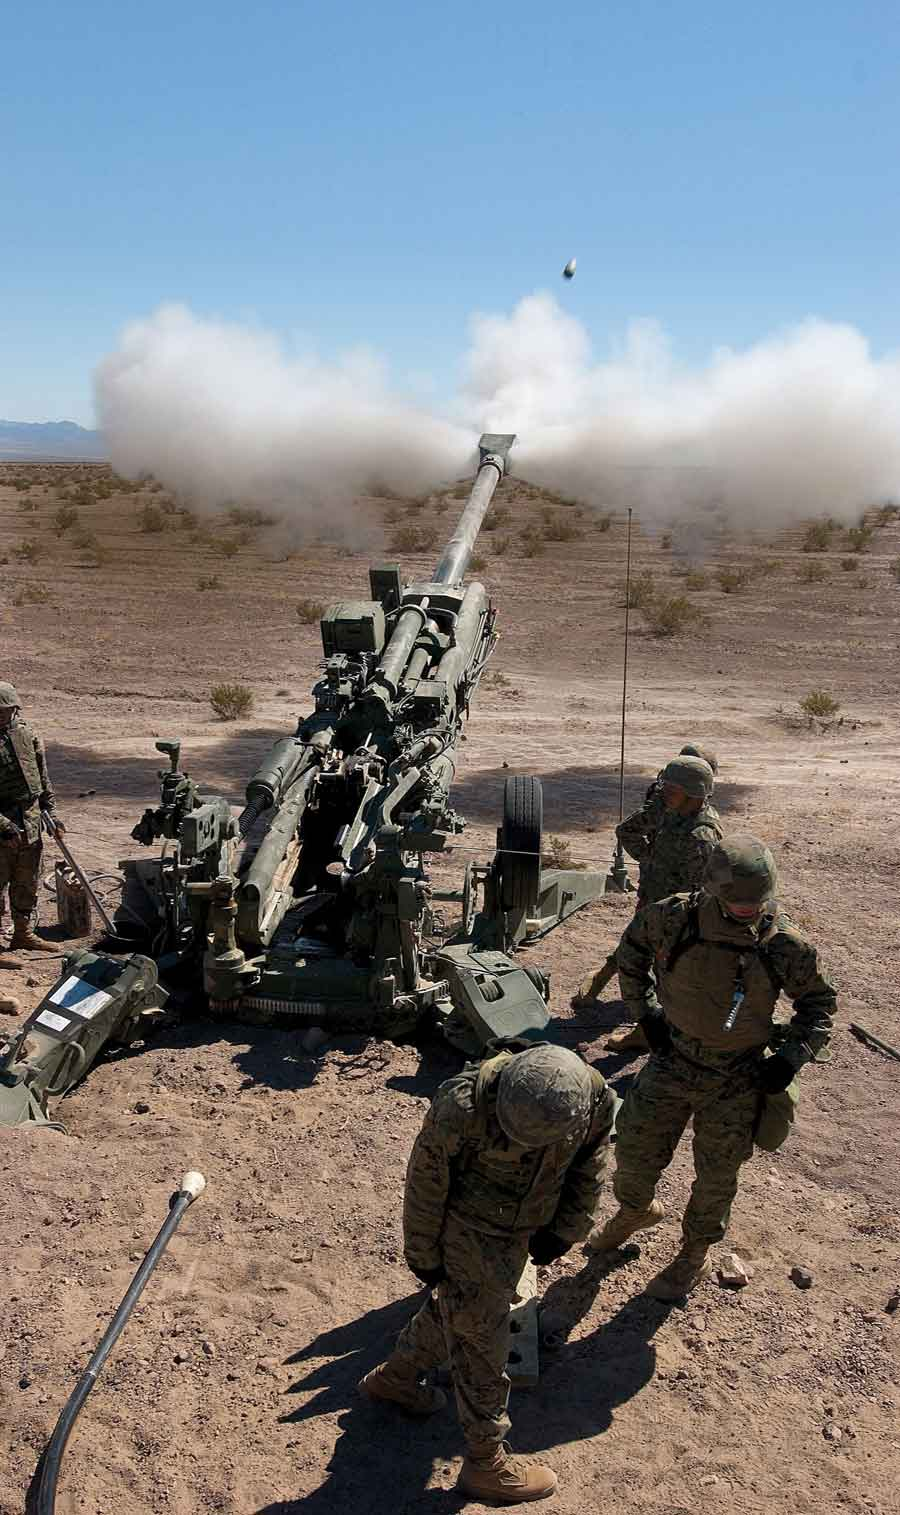 The m109a6 paladin self-propelled howitzer, restoring space, weight, and power-cooling